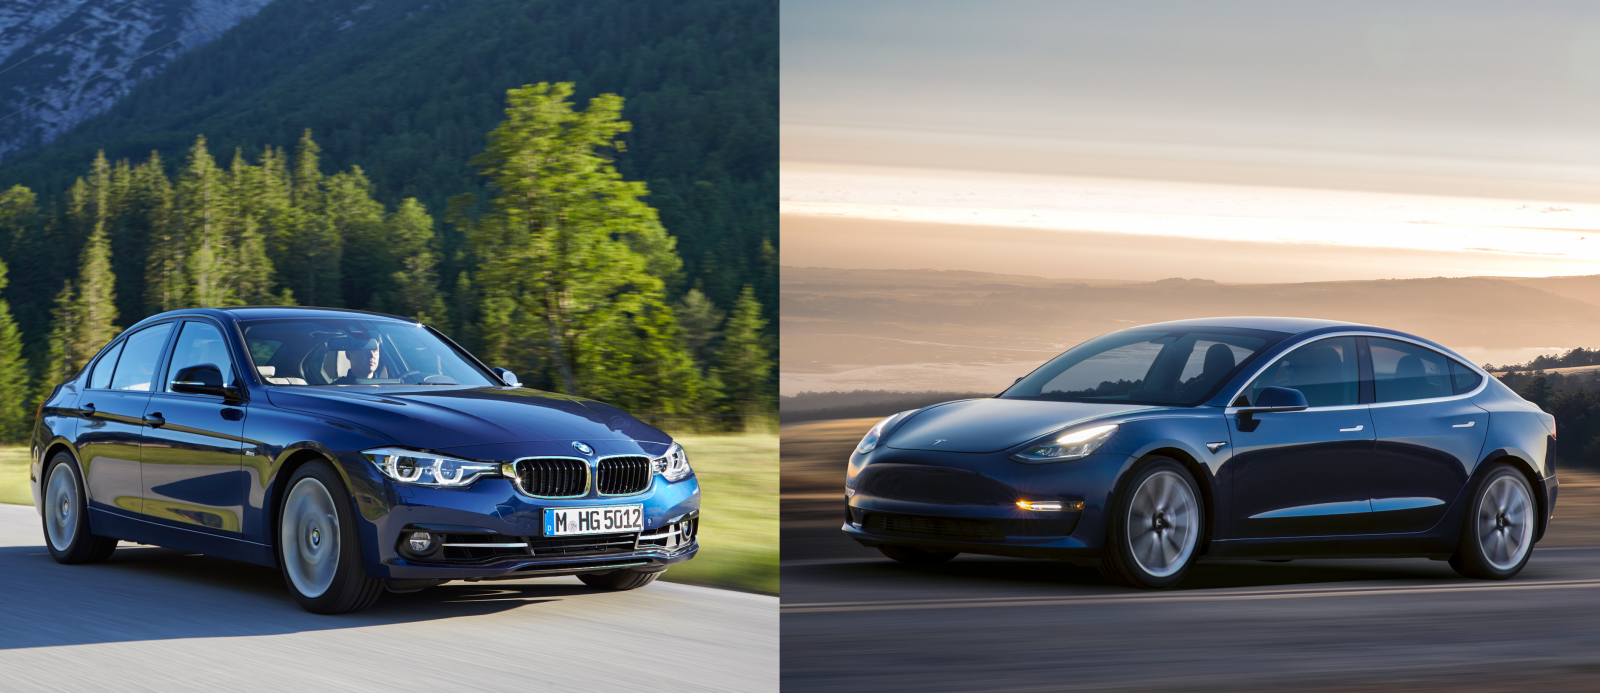 Tesla Model 3 Will Wipe Out Bmw Series S Says Investor